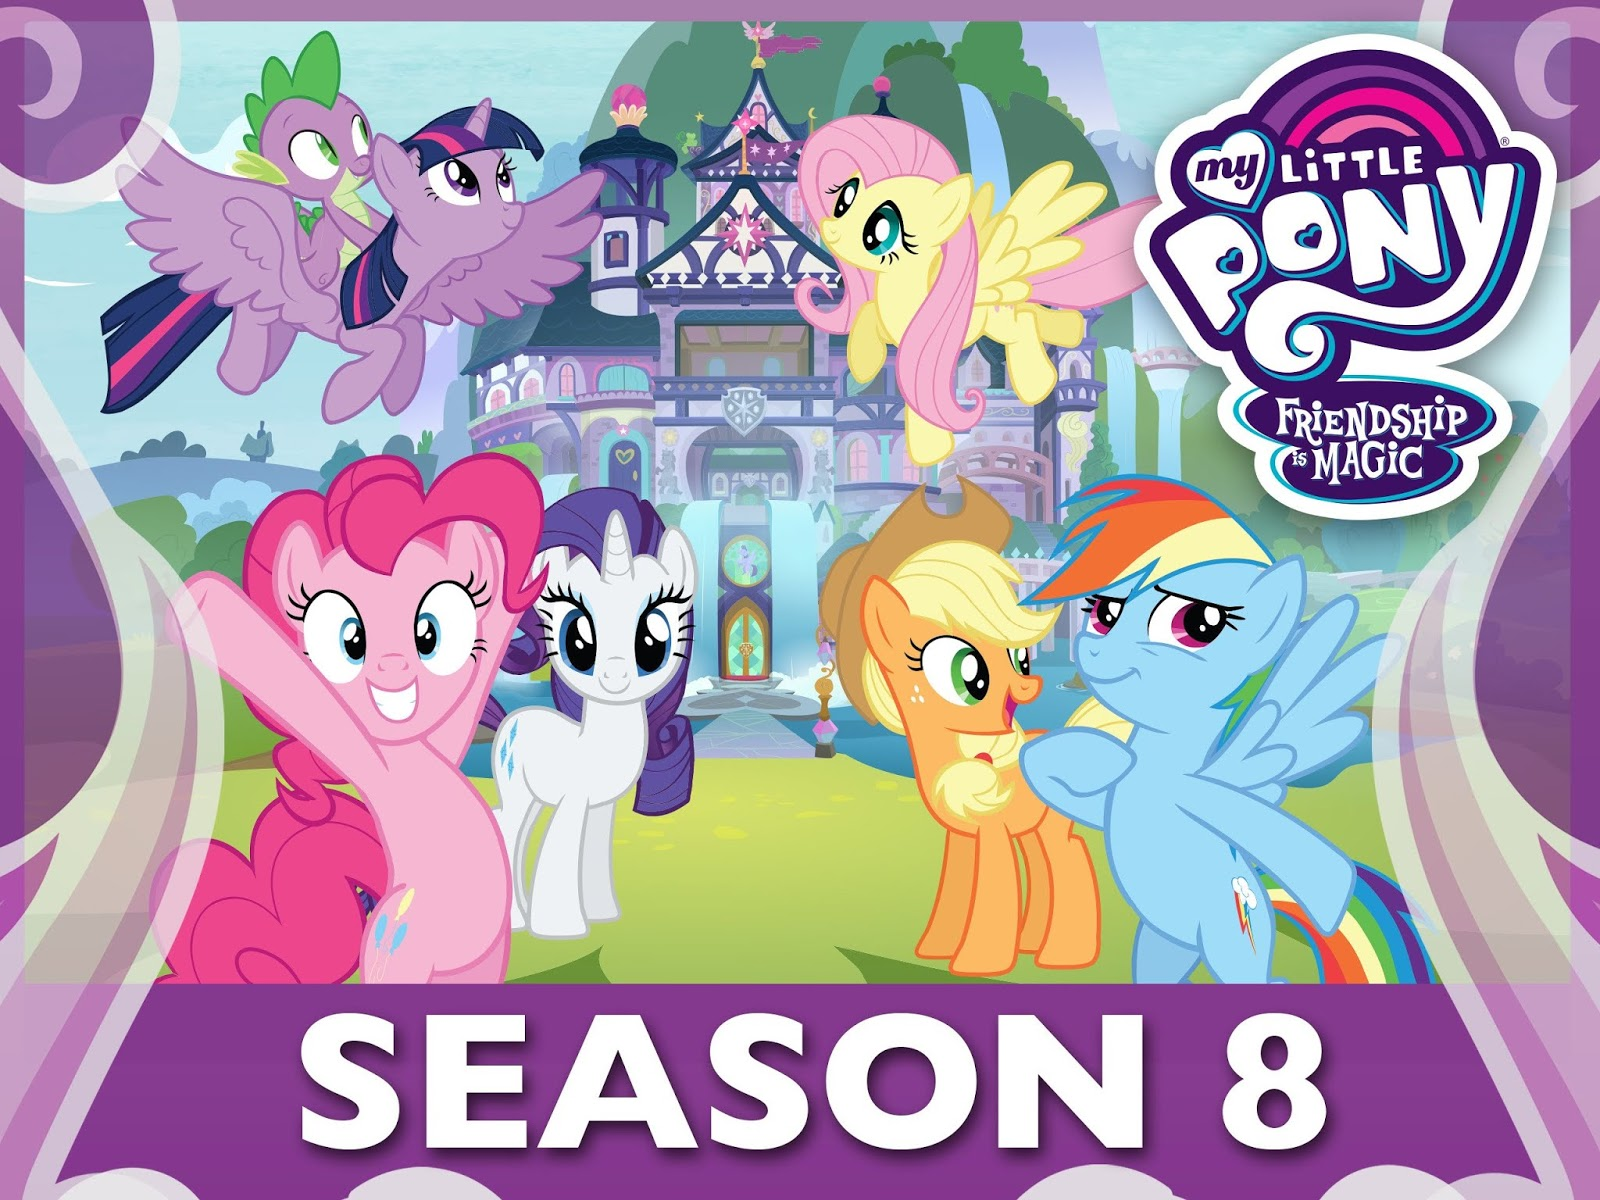 Pony Bé Nhỏ Tình Bạn Diệu Kỳ 8 -My Little Pony Friendship is Magic SS8